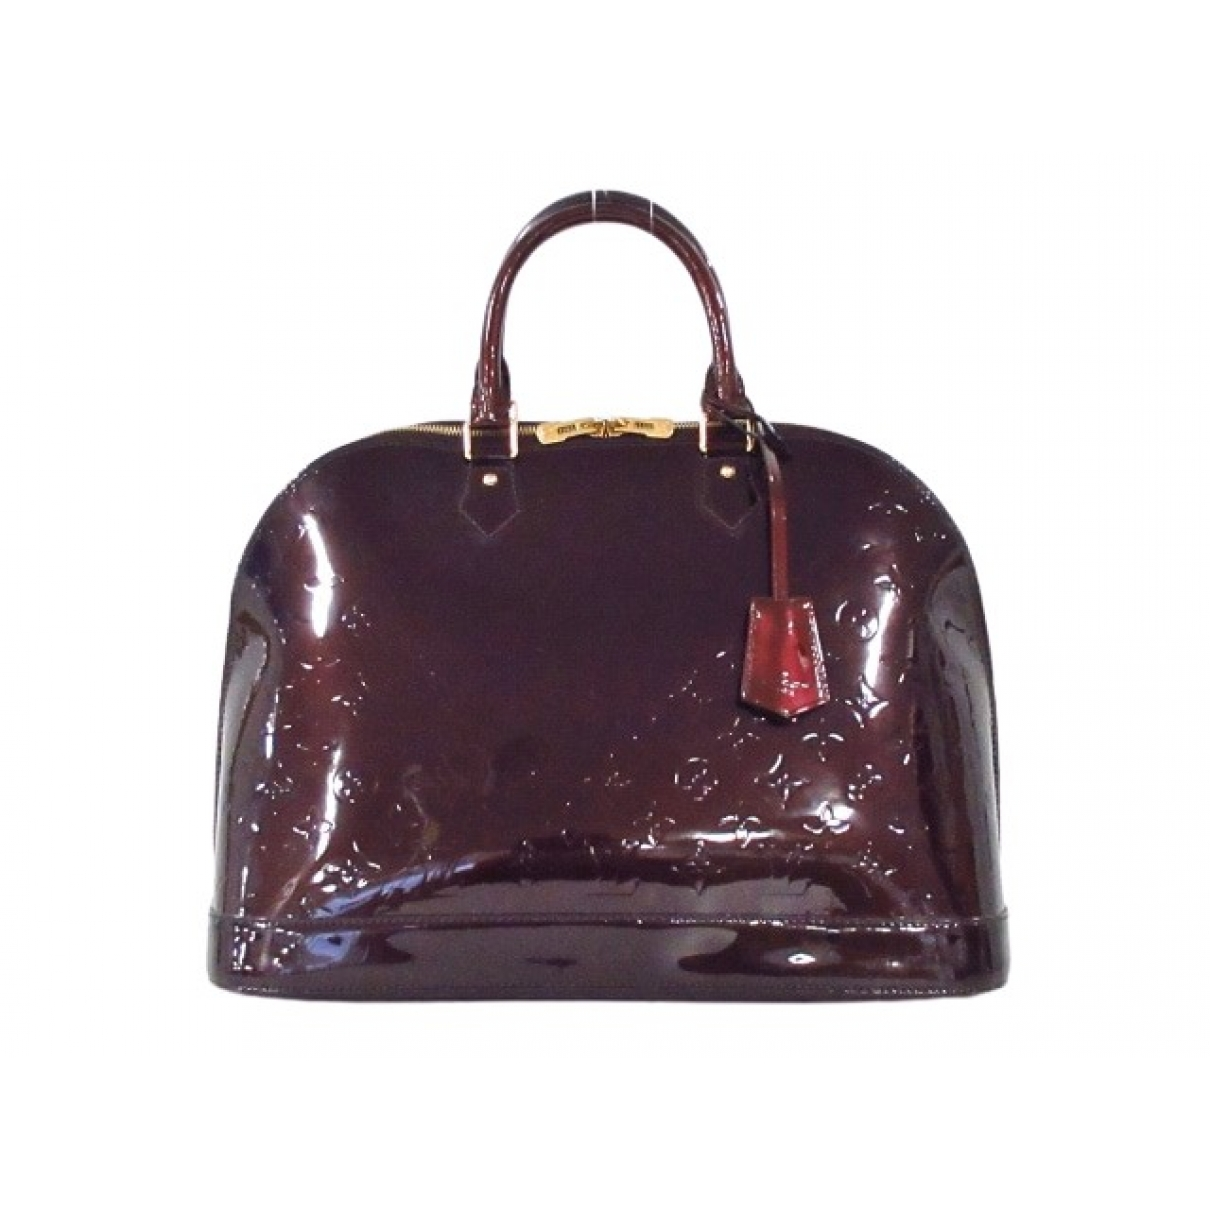 Louis Vuitton Alma Burgundy Patent leather handbag for Women \N